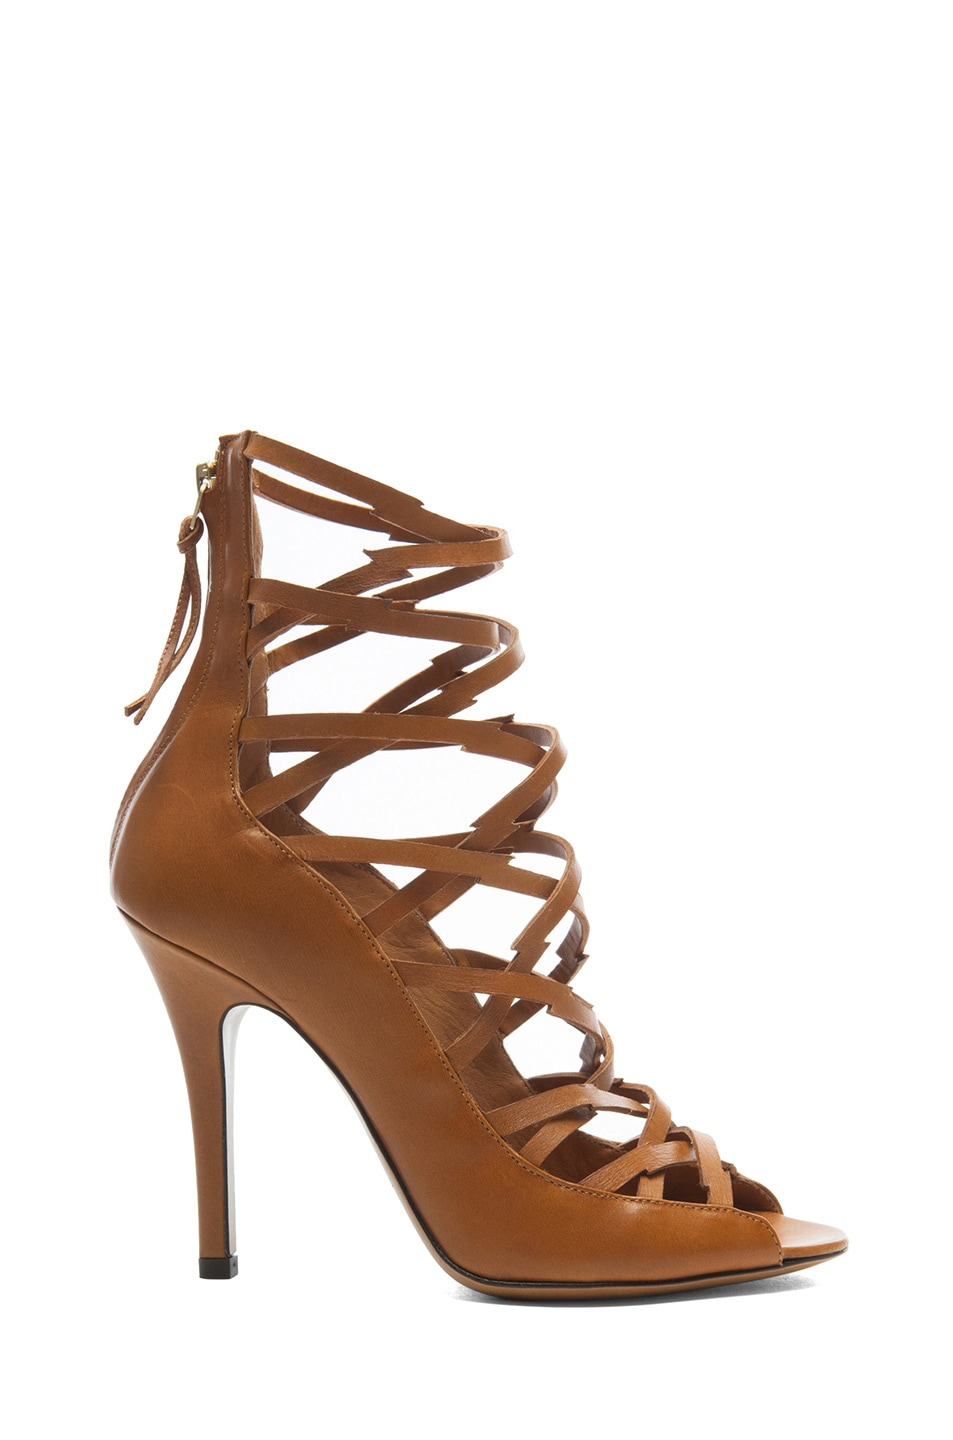 Image 1 of Isabel Marant Paw Calfskin Leather Sandals in Cognac